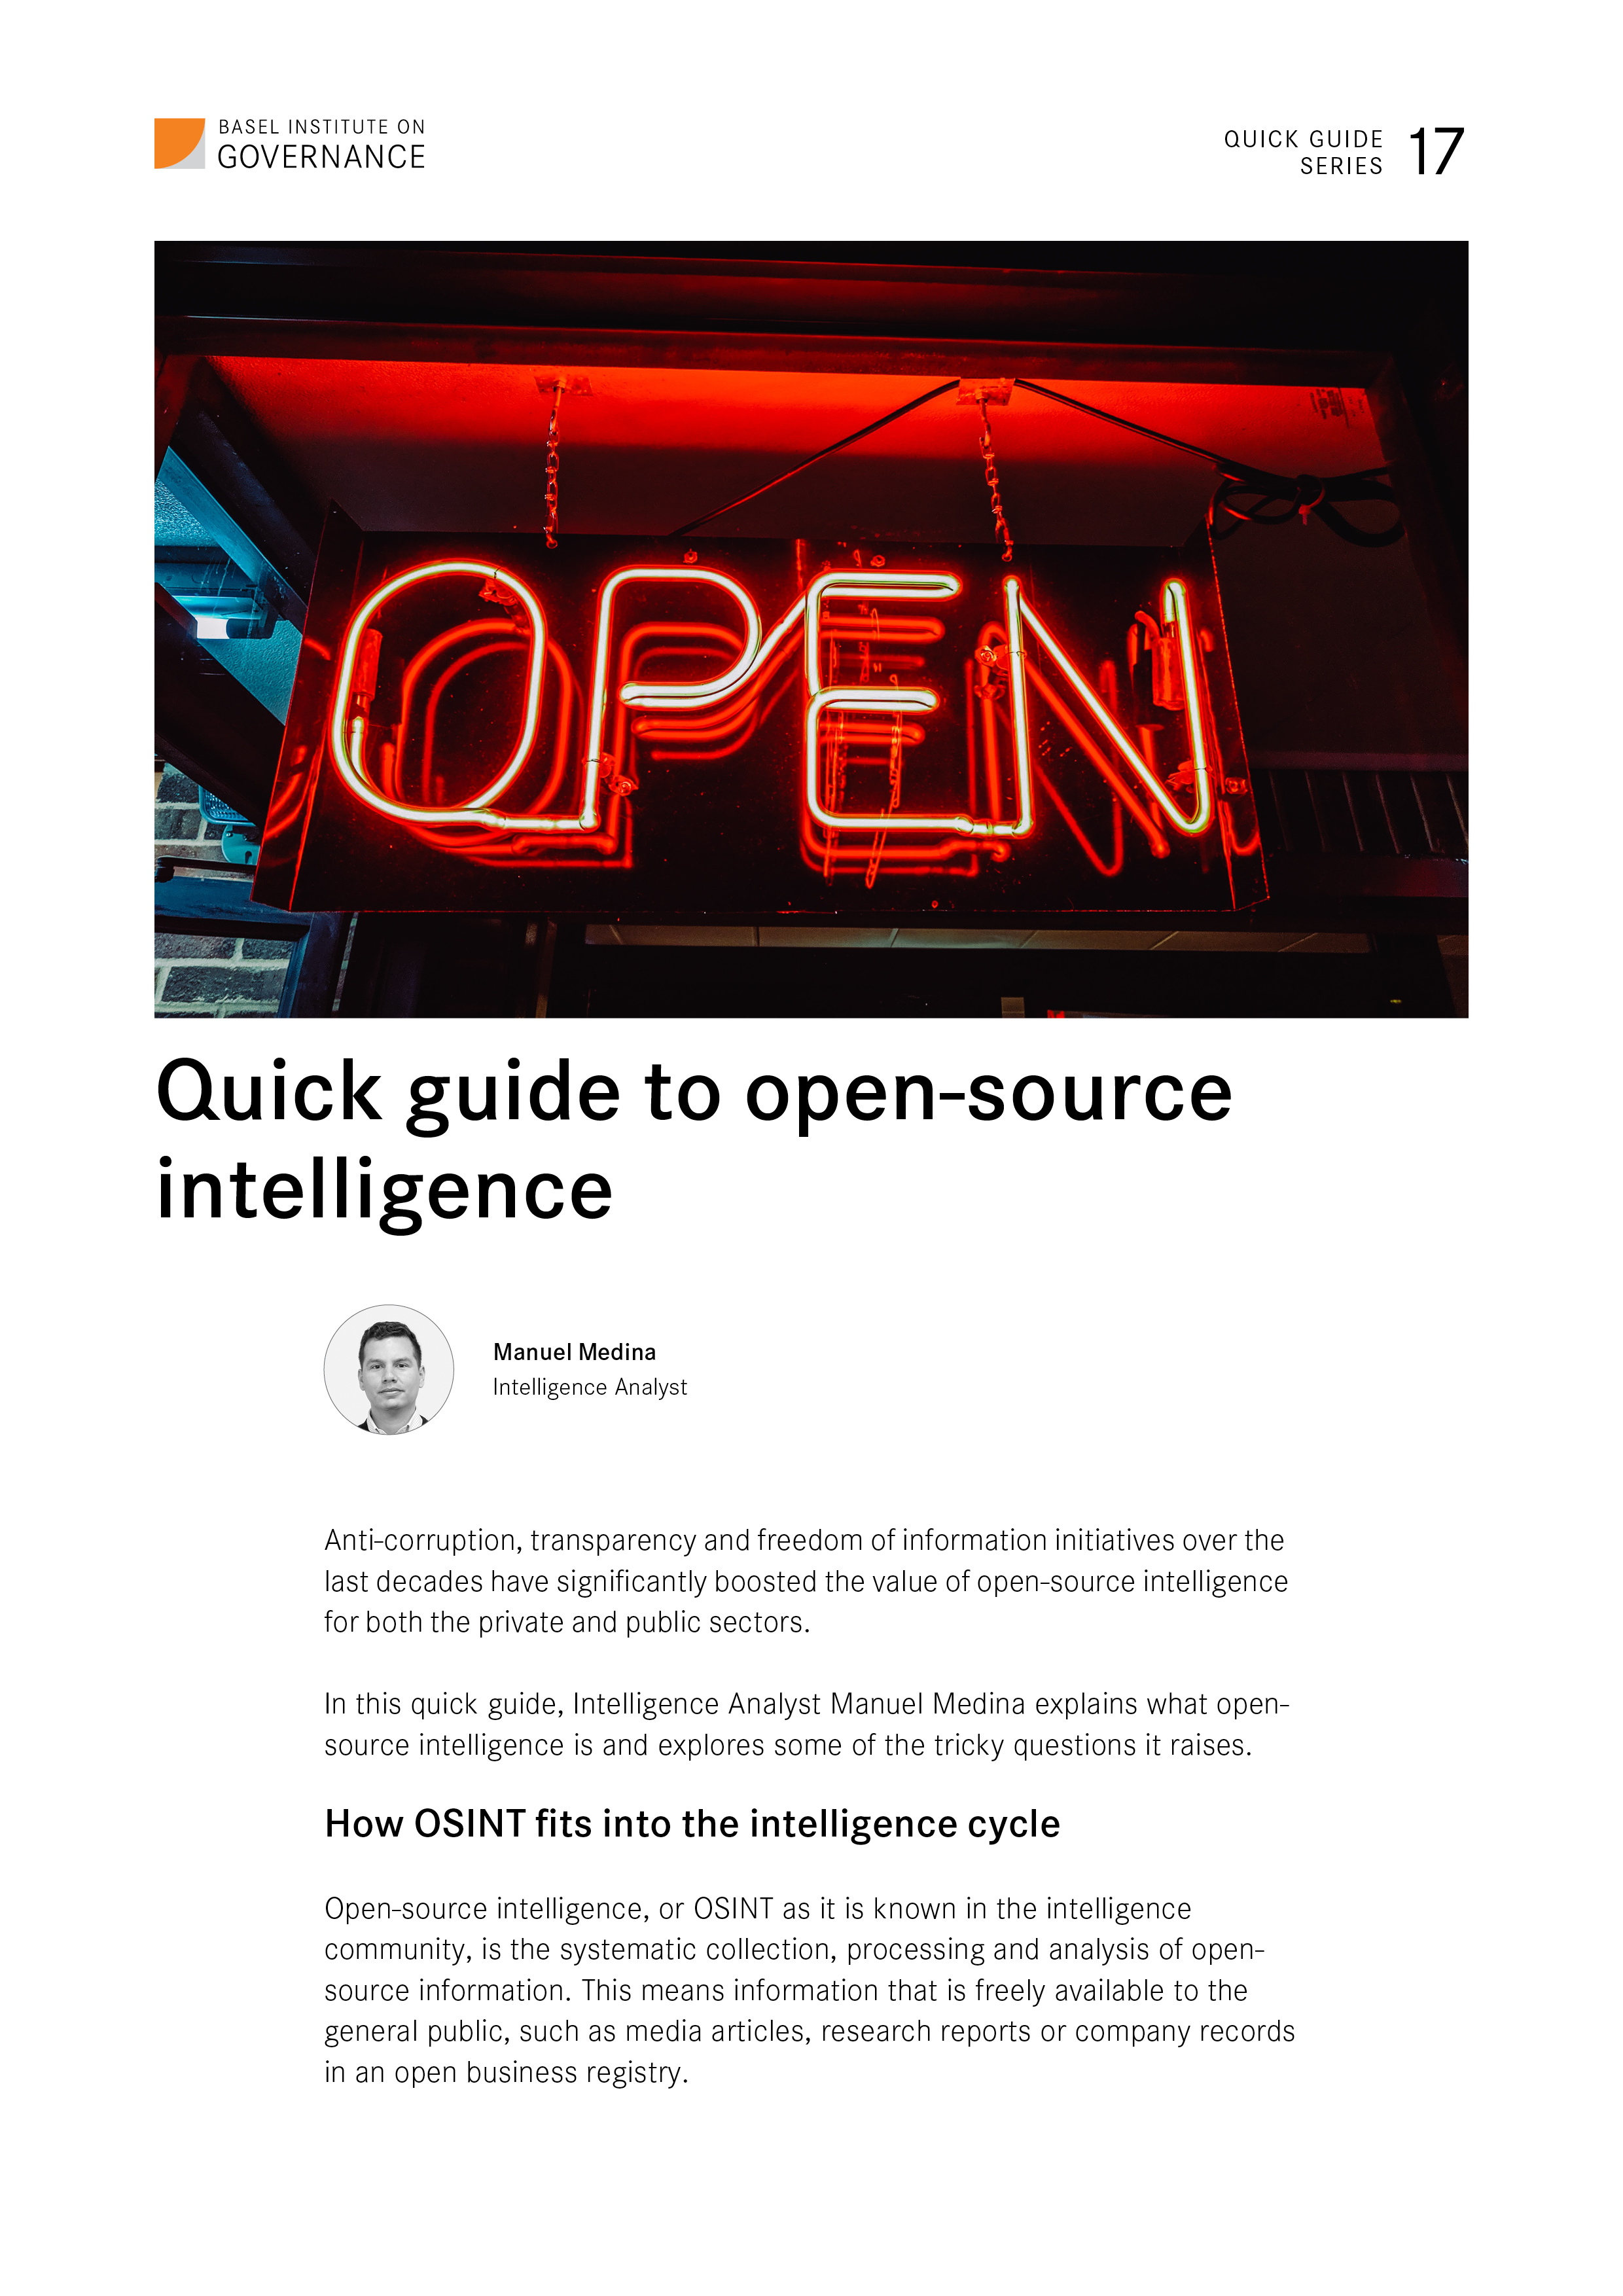 Quick guide 17: Open Intelligence